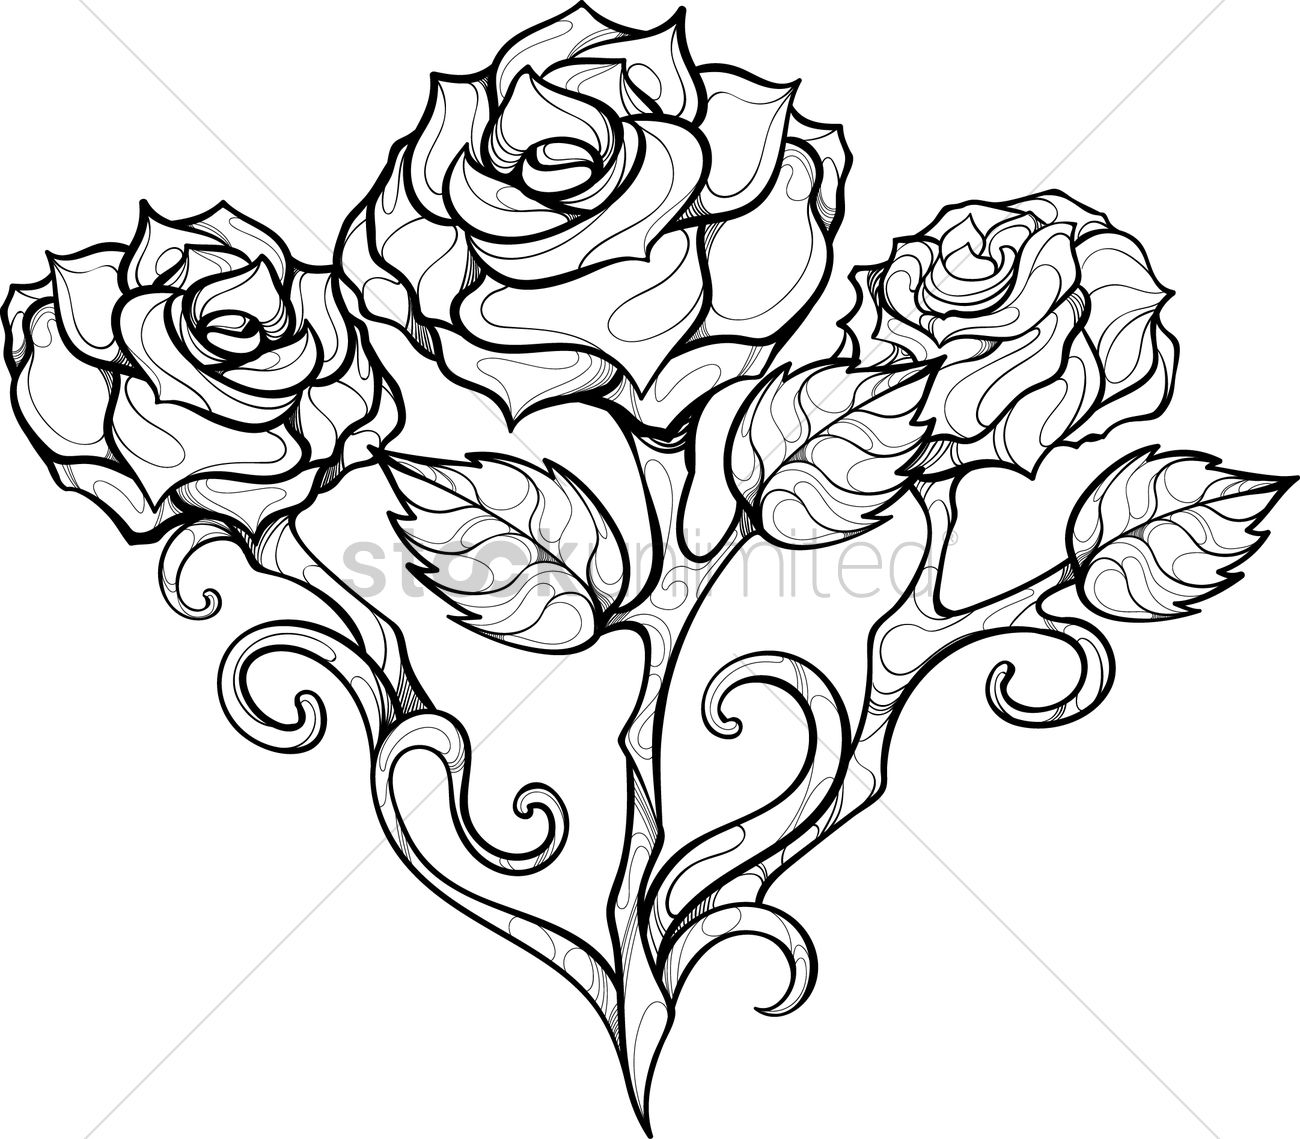 graphic design coloring pages - photo#50